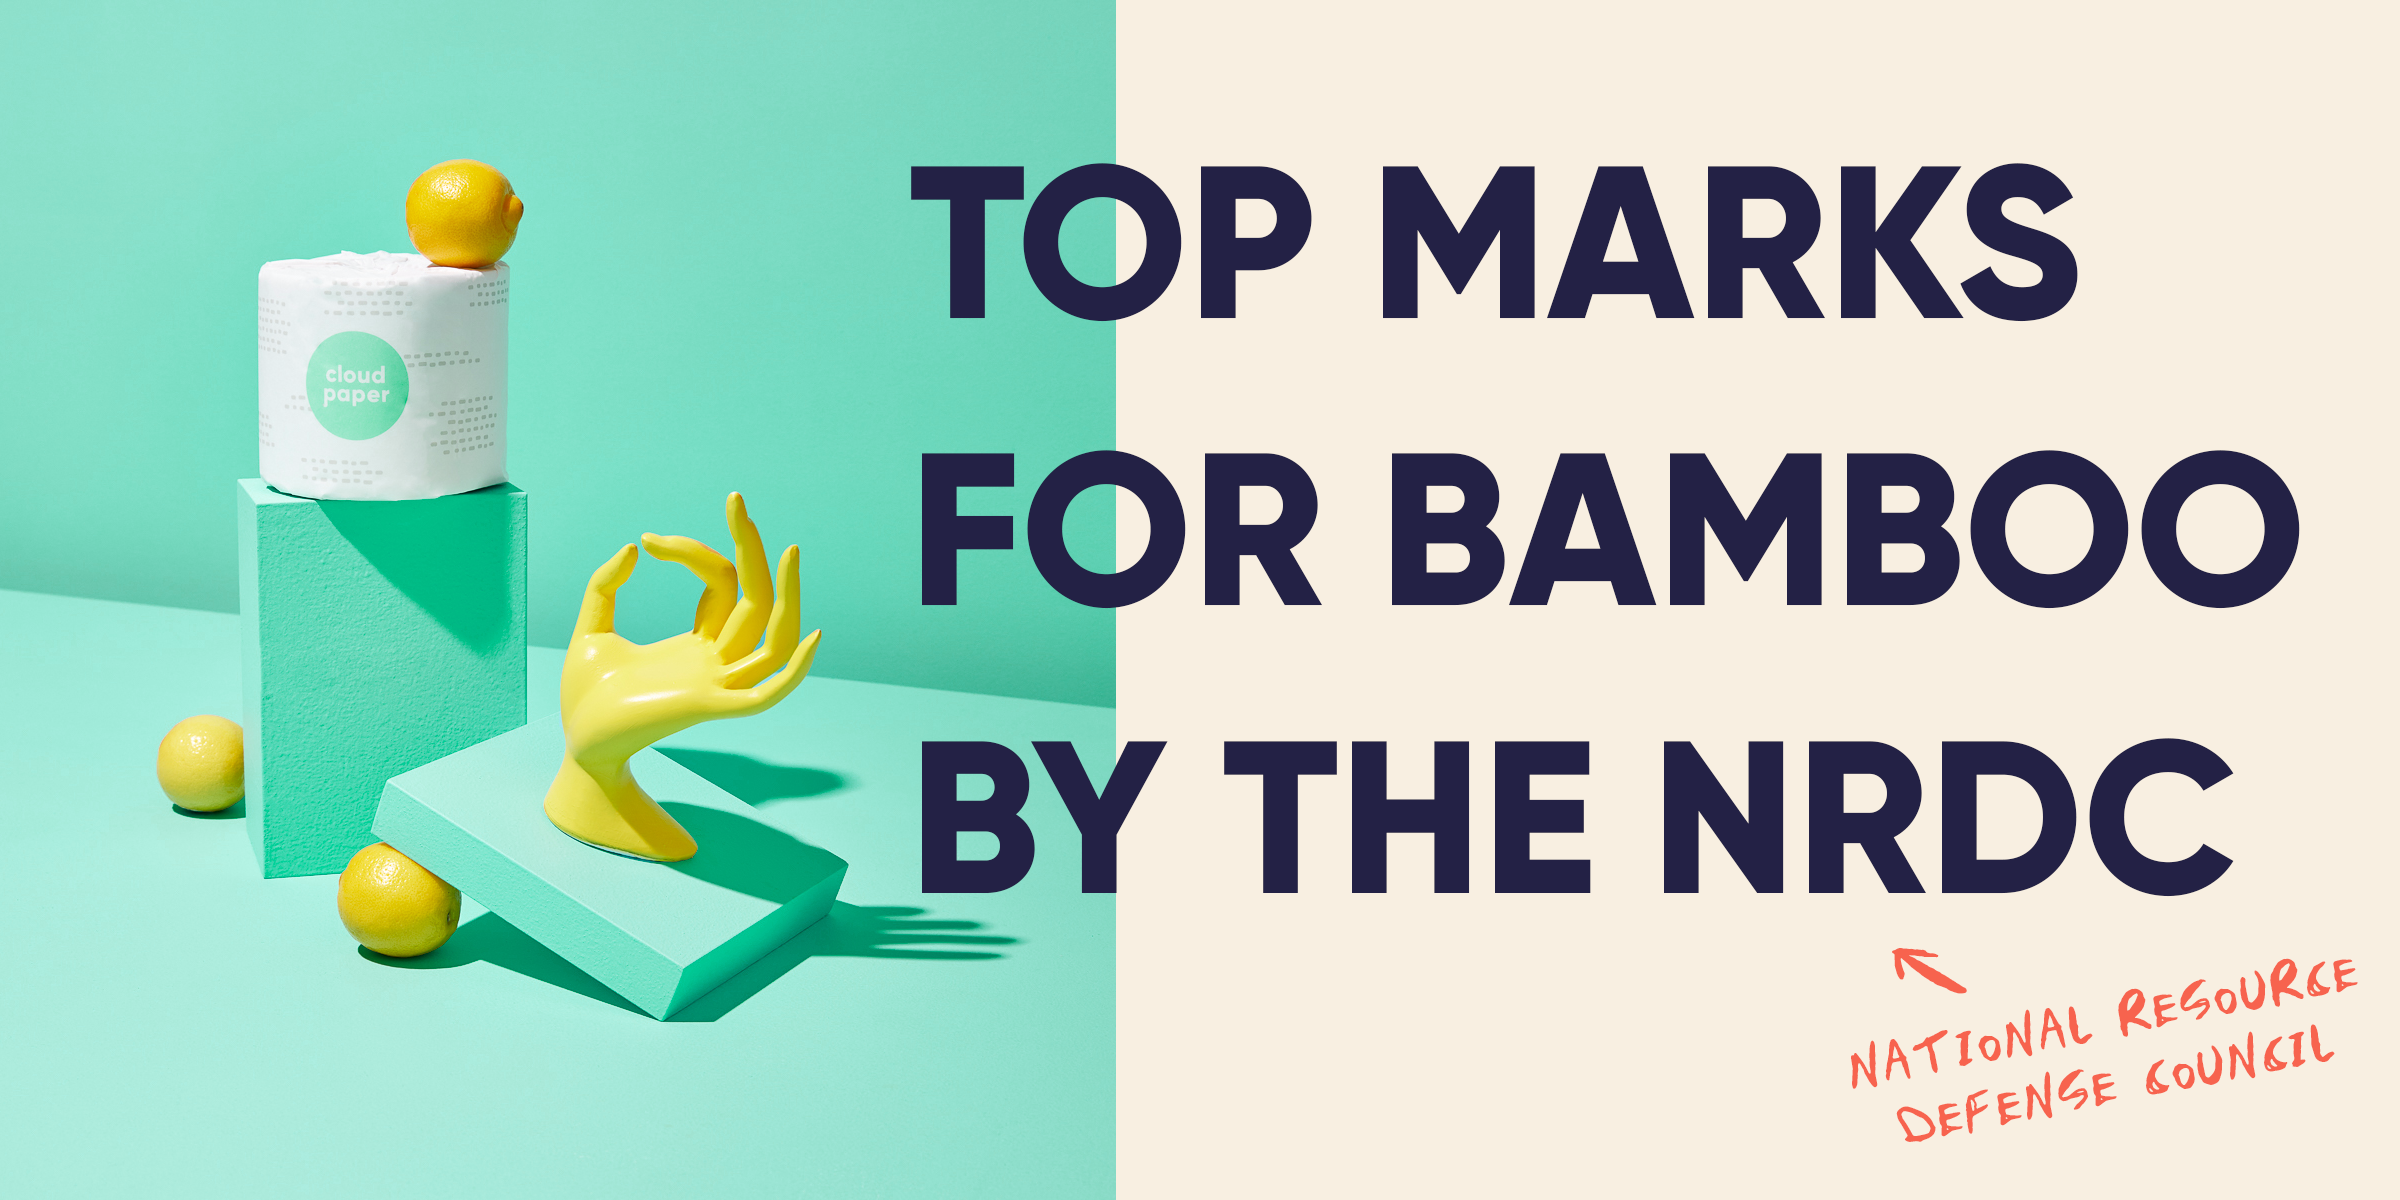 Cloud Paper received the highest score possible for bamboo brands